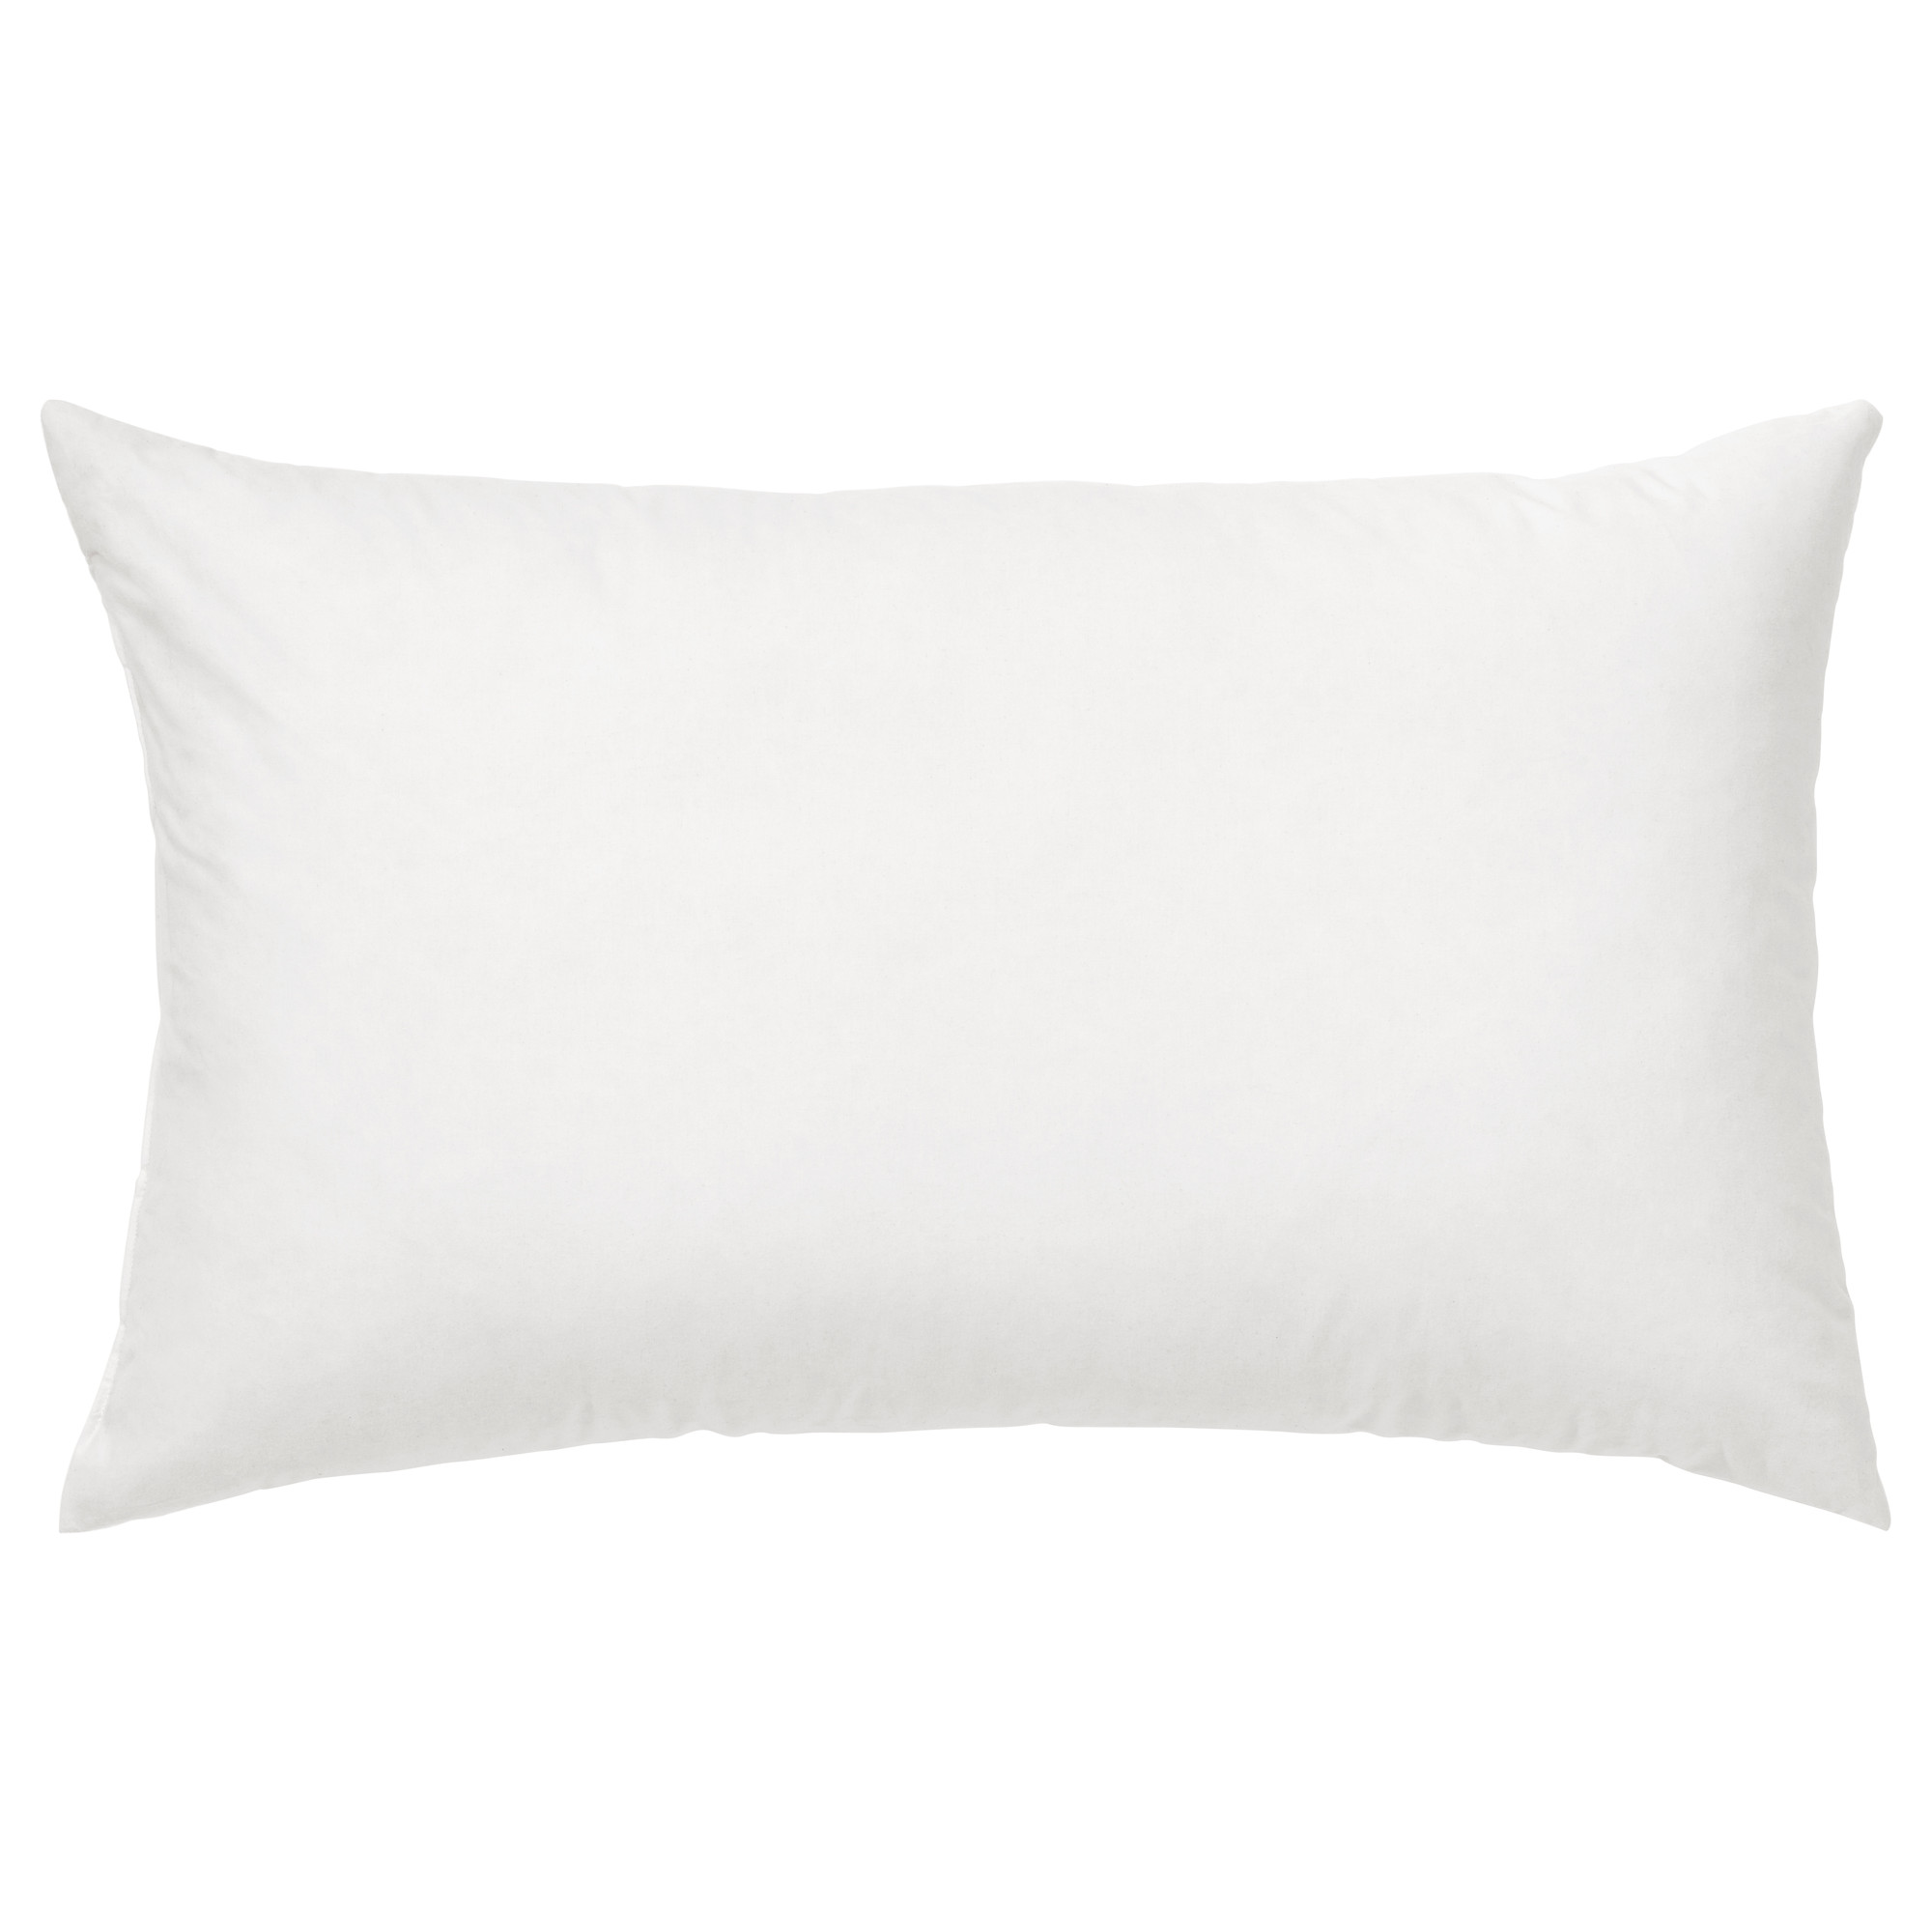 Best Bed Rest Pillow With Arms | Brentwood Backrest Pillow | Bed Pillow With Arms